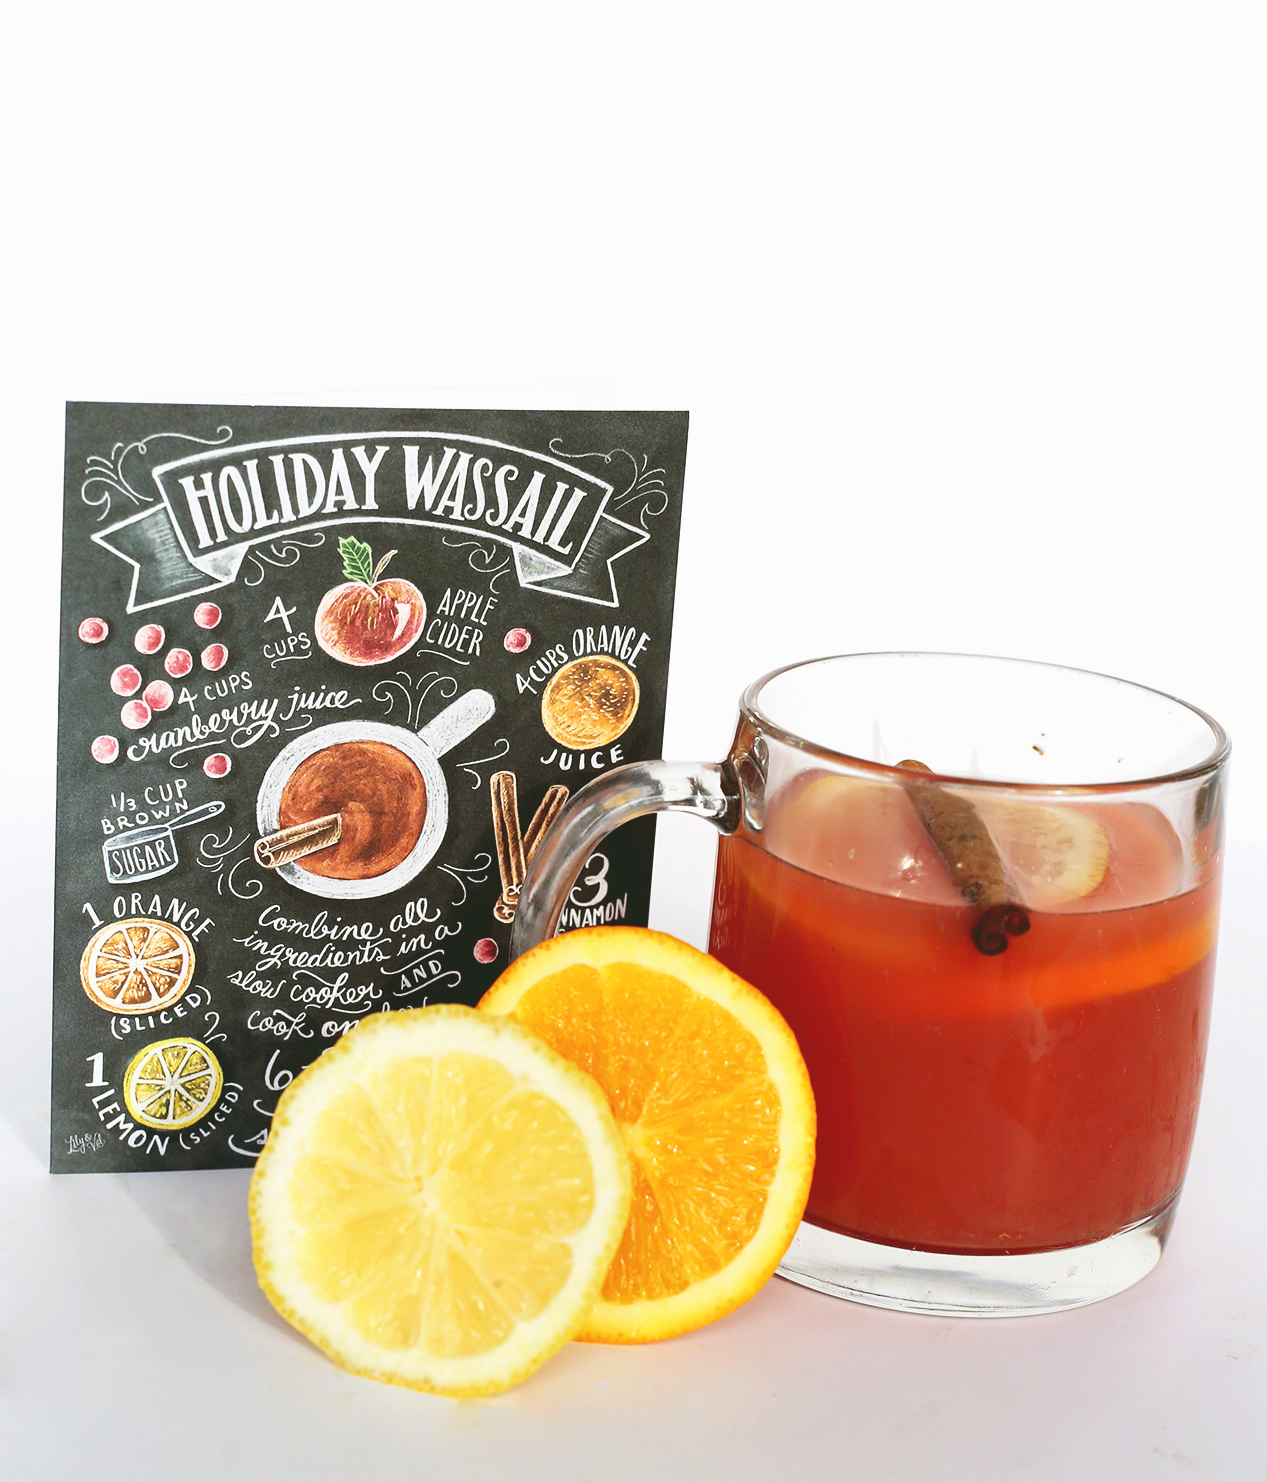 One perfect concoction of Christmas memories and Christmas aromas is found in holiday Wassail, a must-have drink for the holidays.